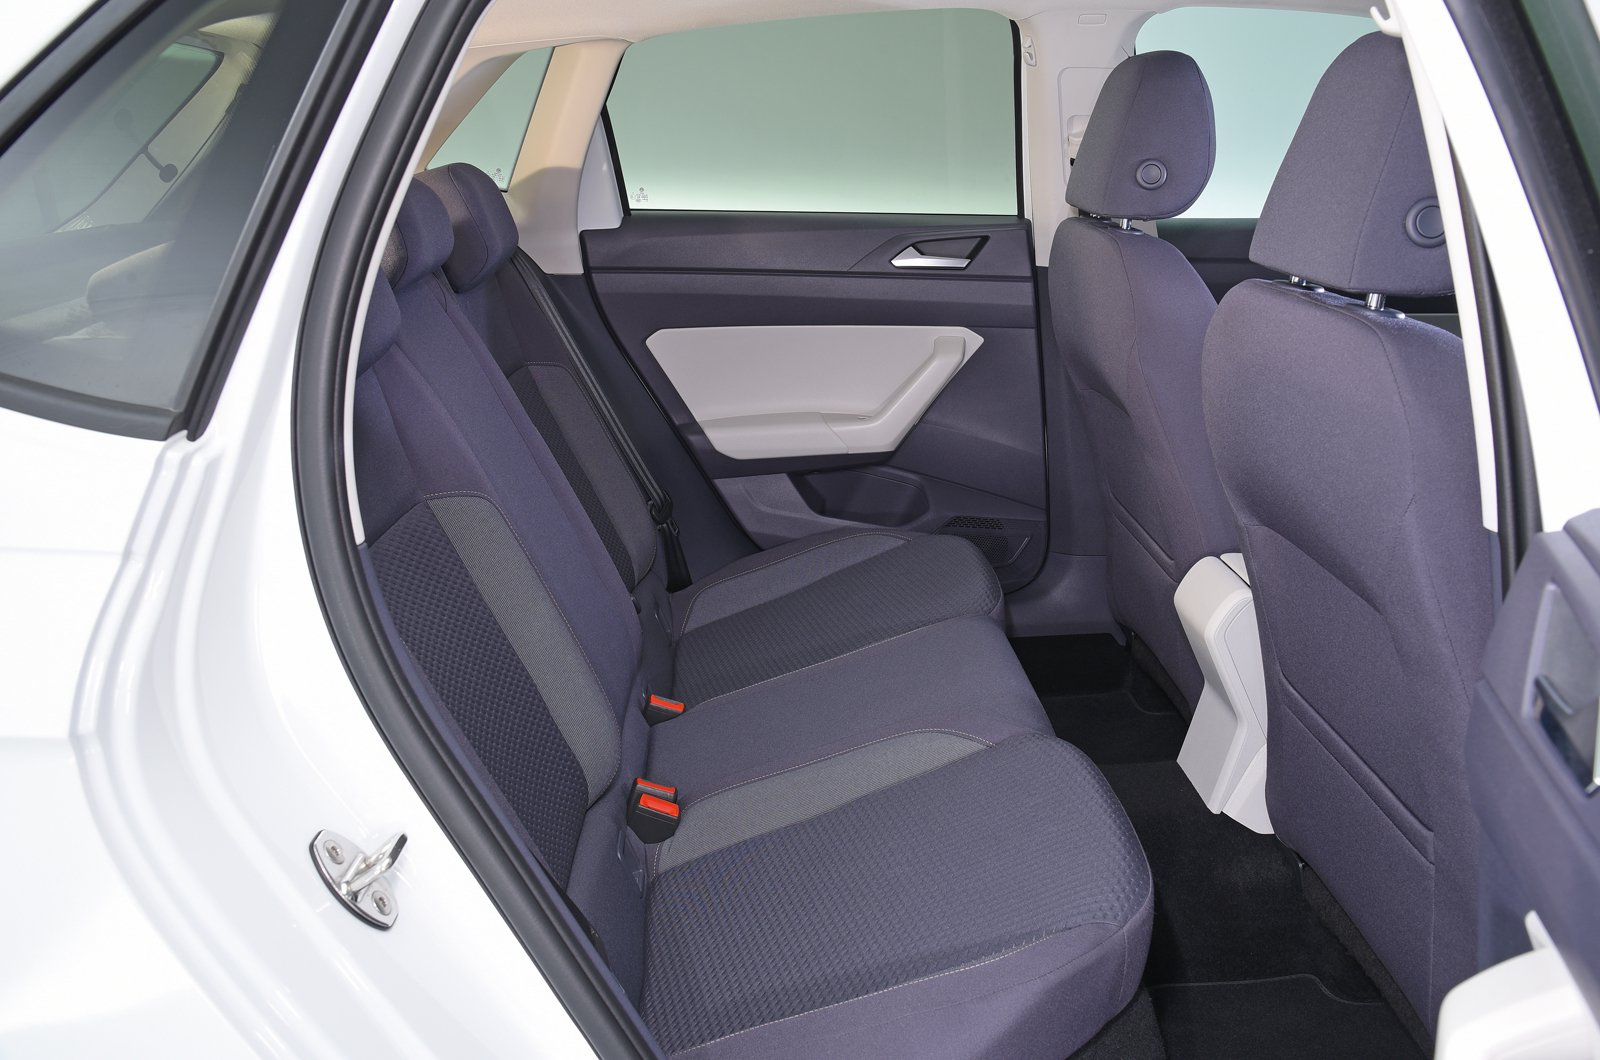 Volkswagen Polo rear seats